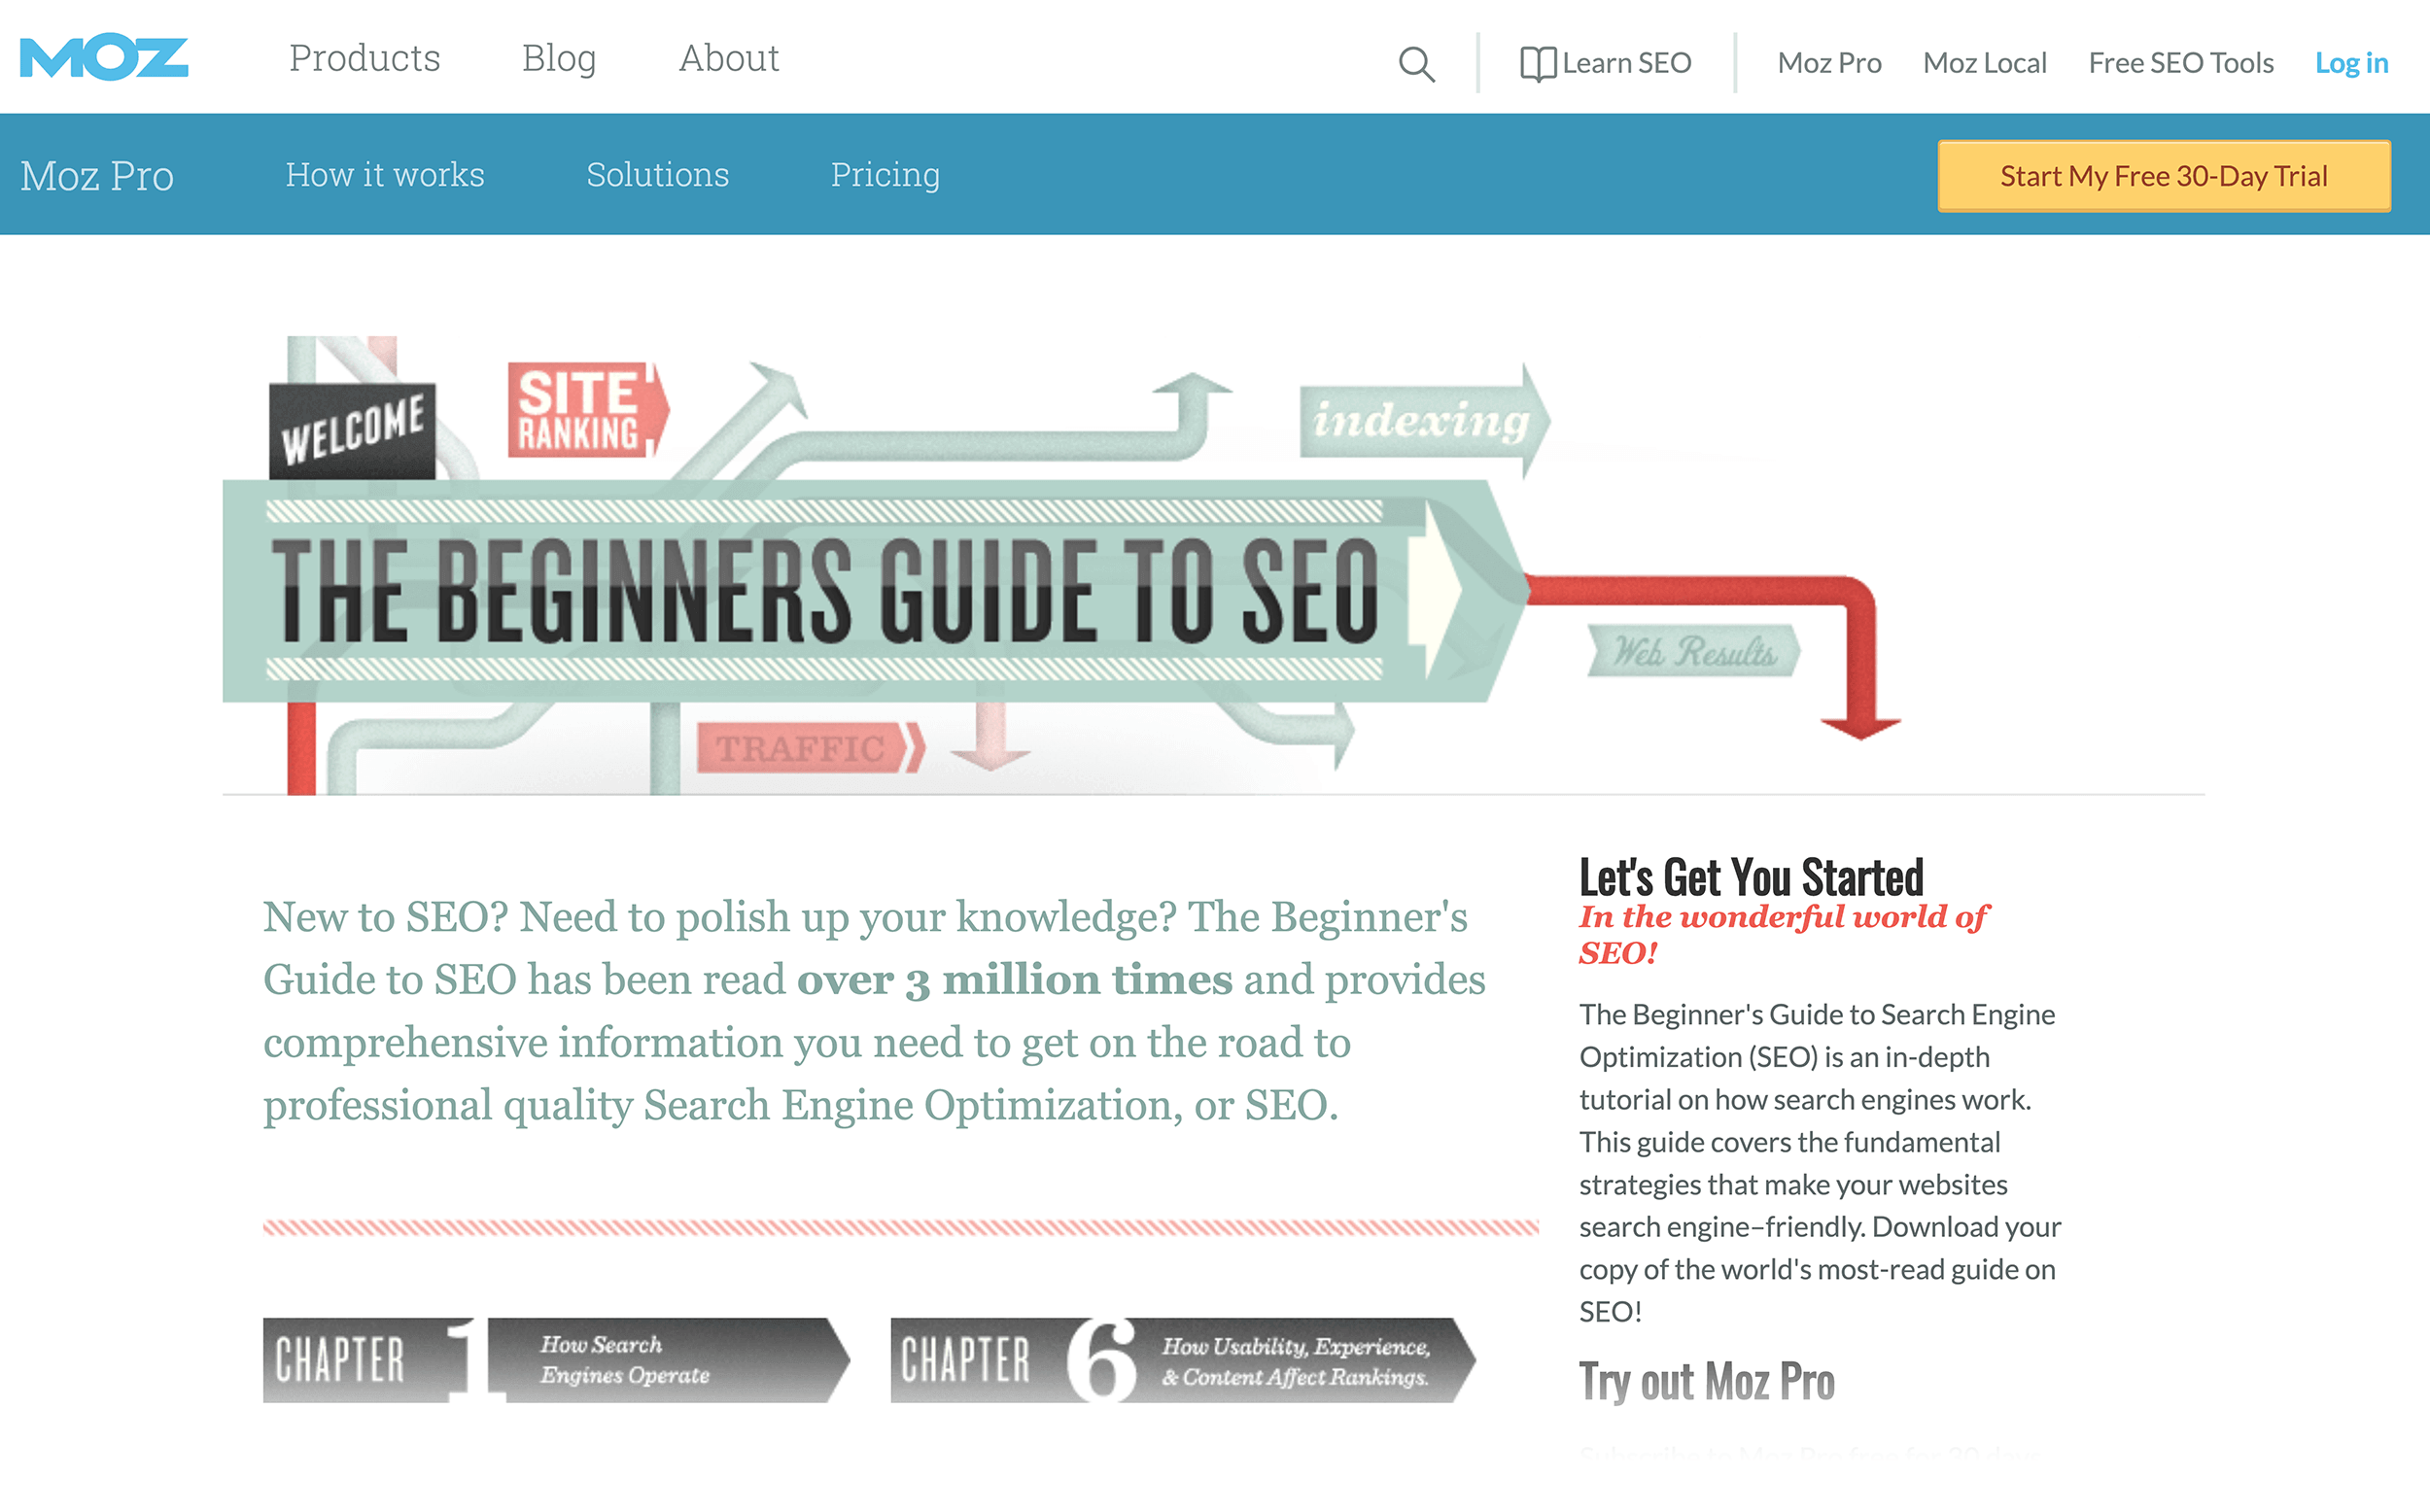 Moz – Beginners Guide to SEO